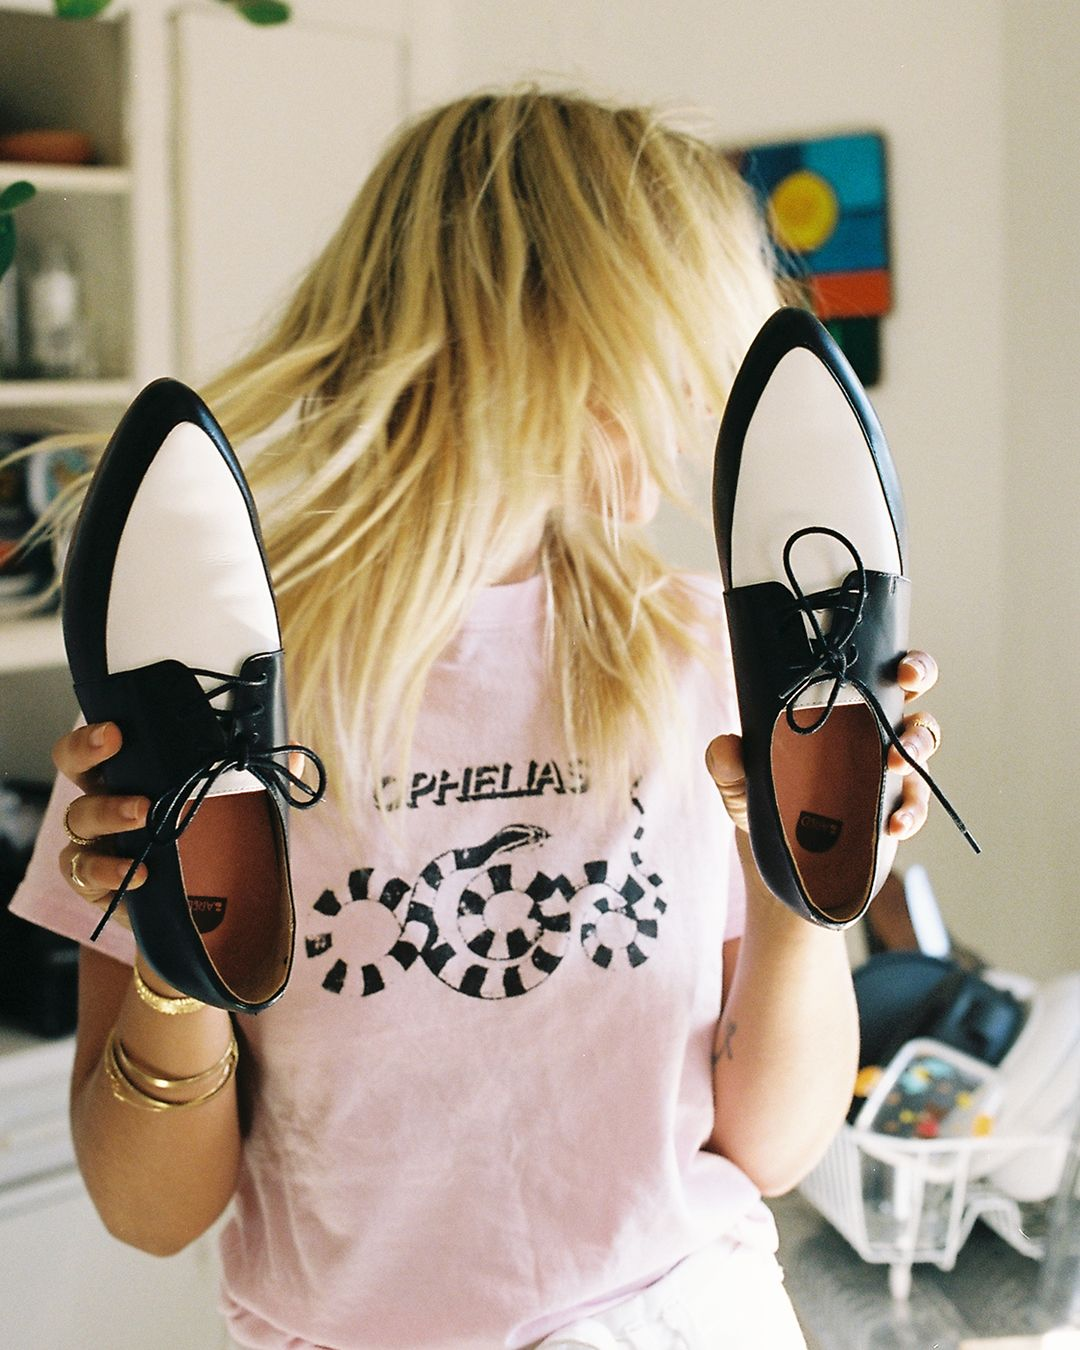 Bared_Footwear_Womens_Collaboration_Anna_Feller_Penguin_Black_White_Leather_Lace_Ups_Pink_Tshirt